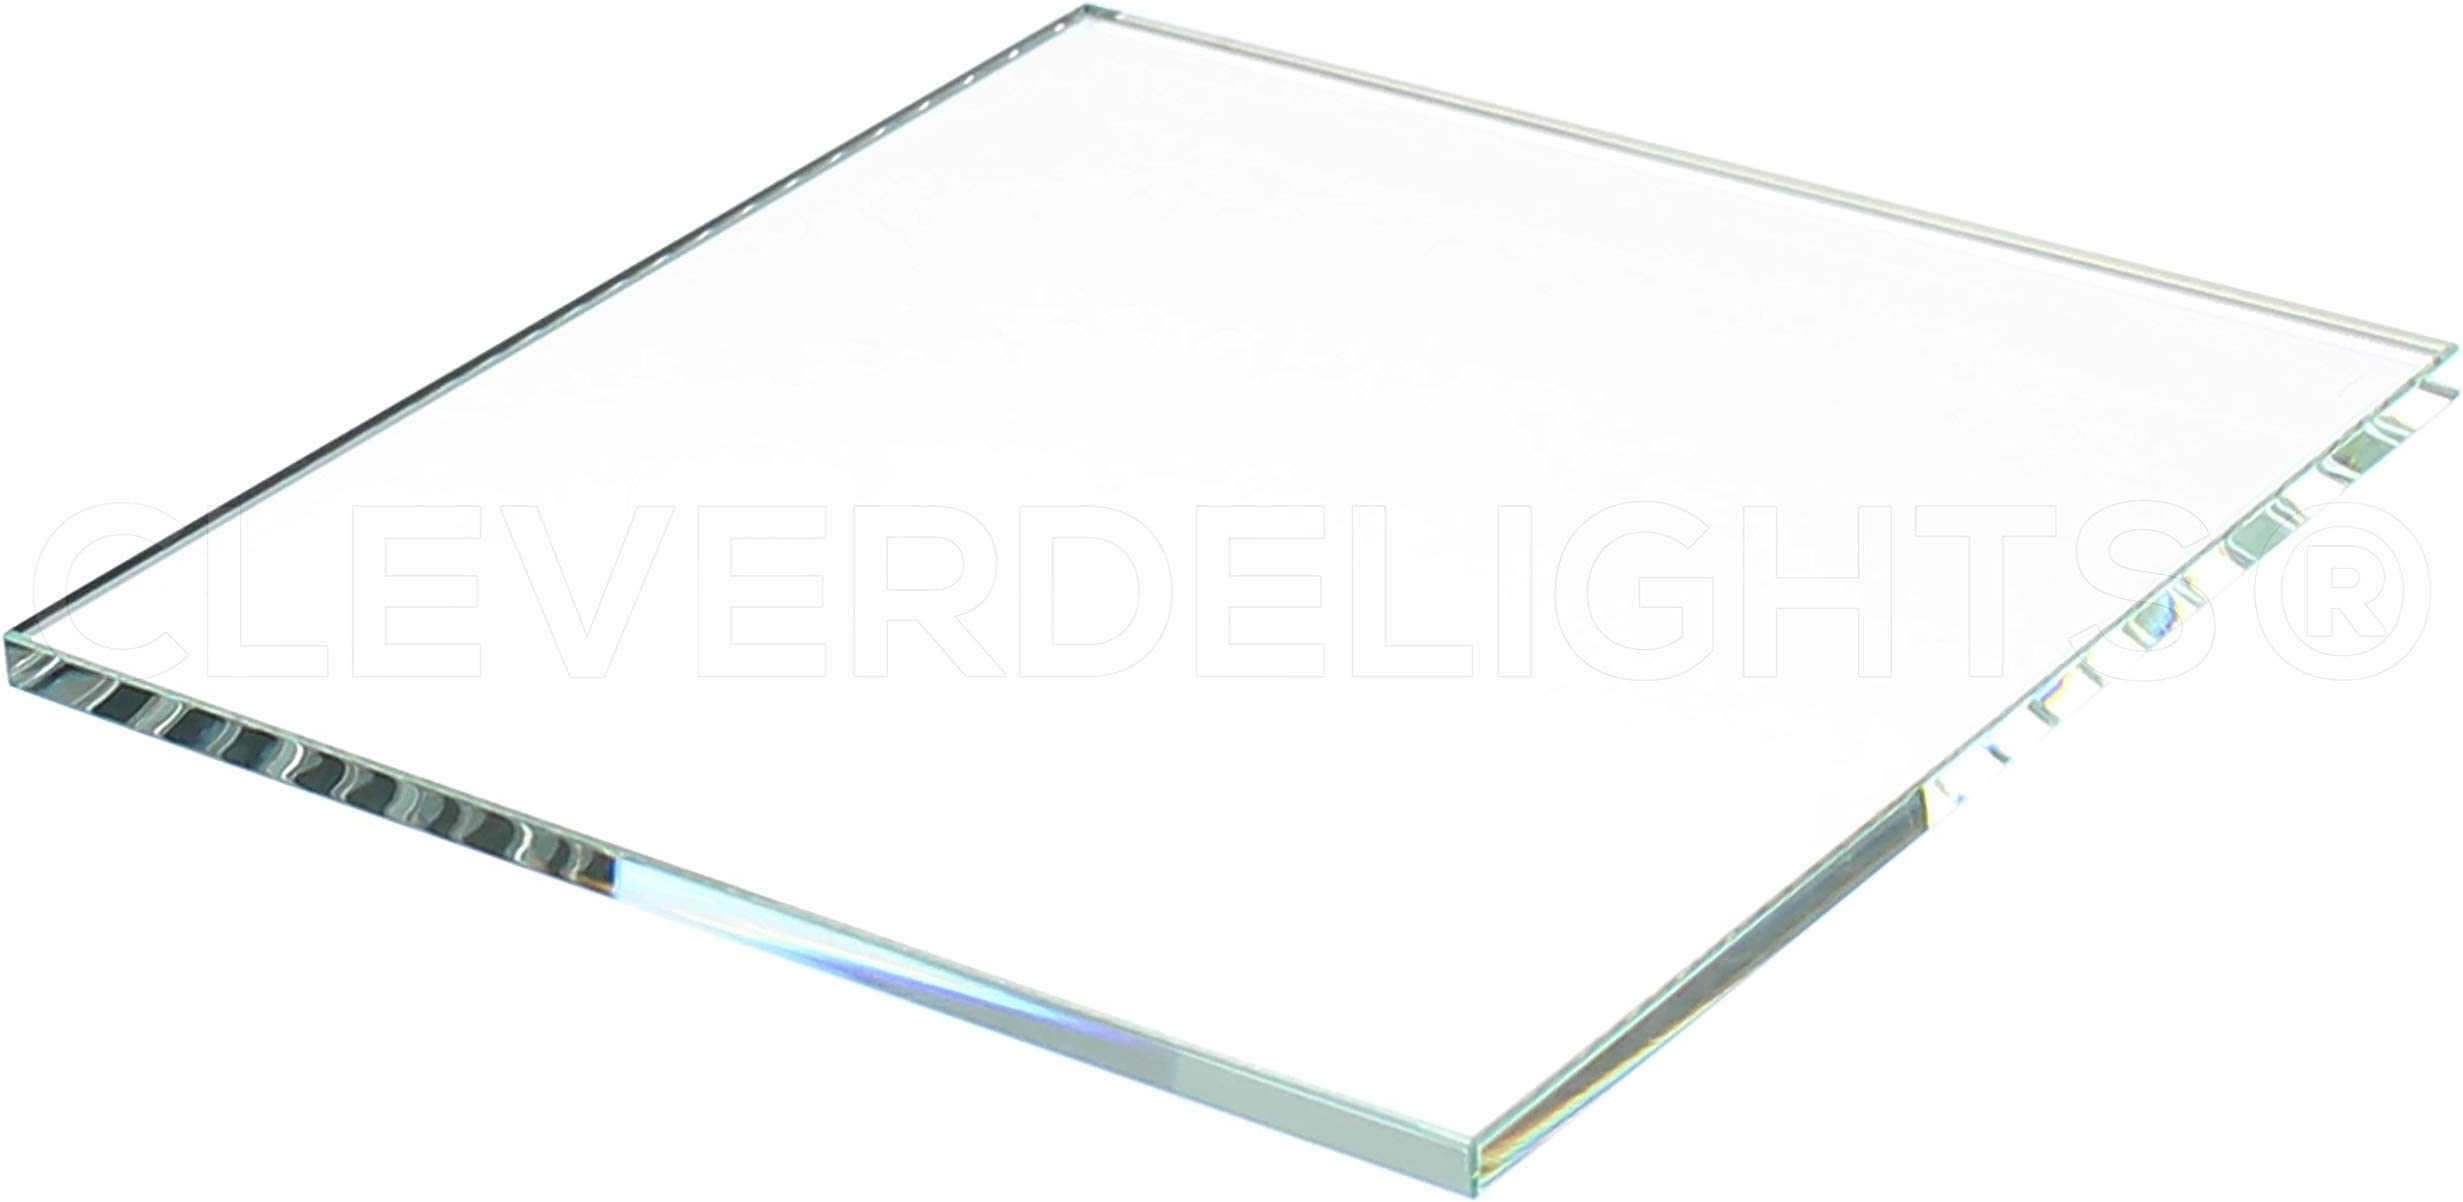 Clear Transparent Tiles 3 x 3 x 58 Inch 20 Pk Solid Glass Tiles 3 Square Glass Tiles 58 Thick